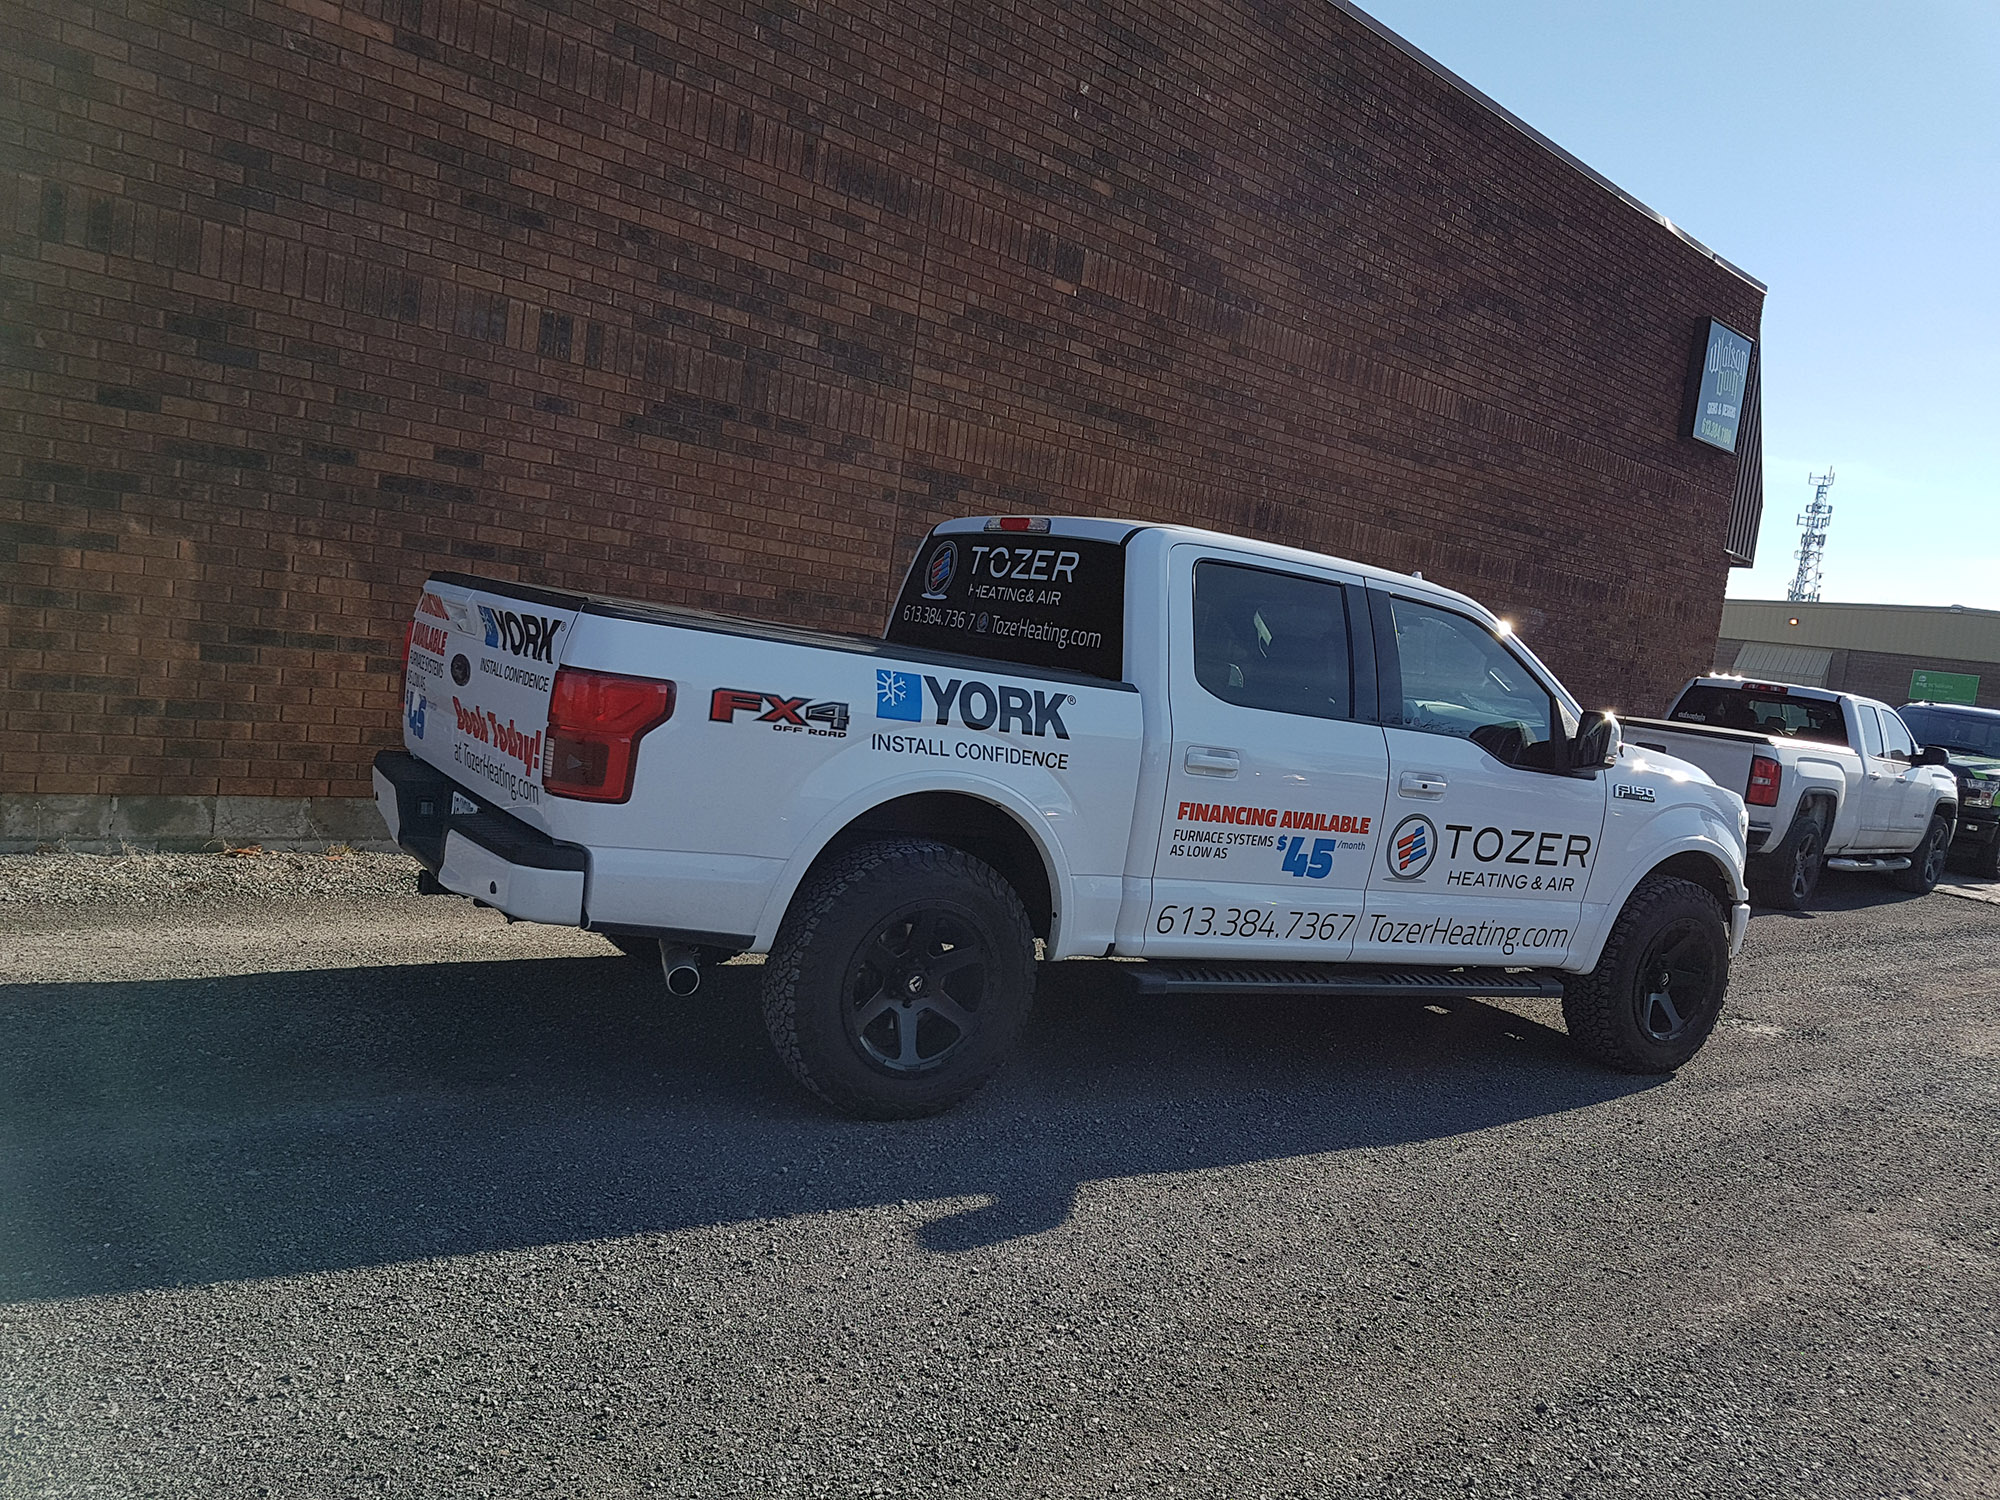 Tozer Heating & Air Ford F-150